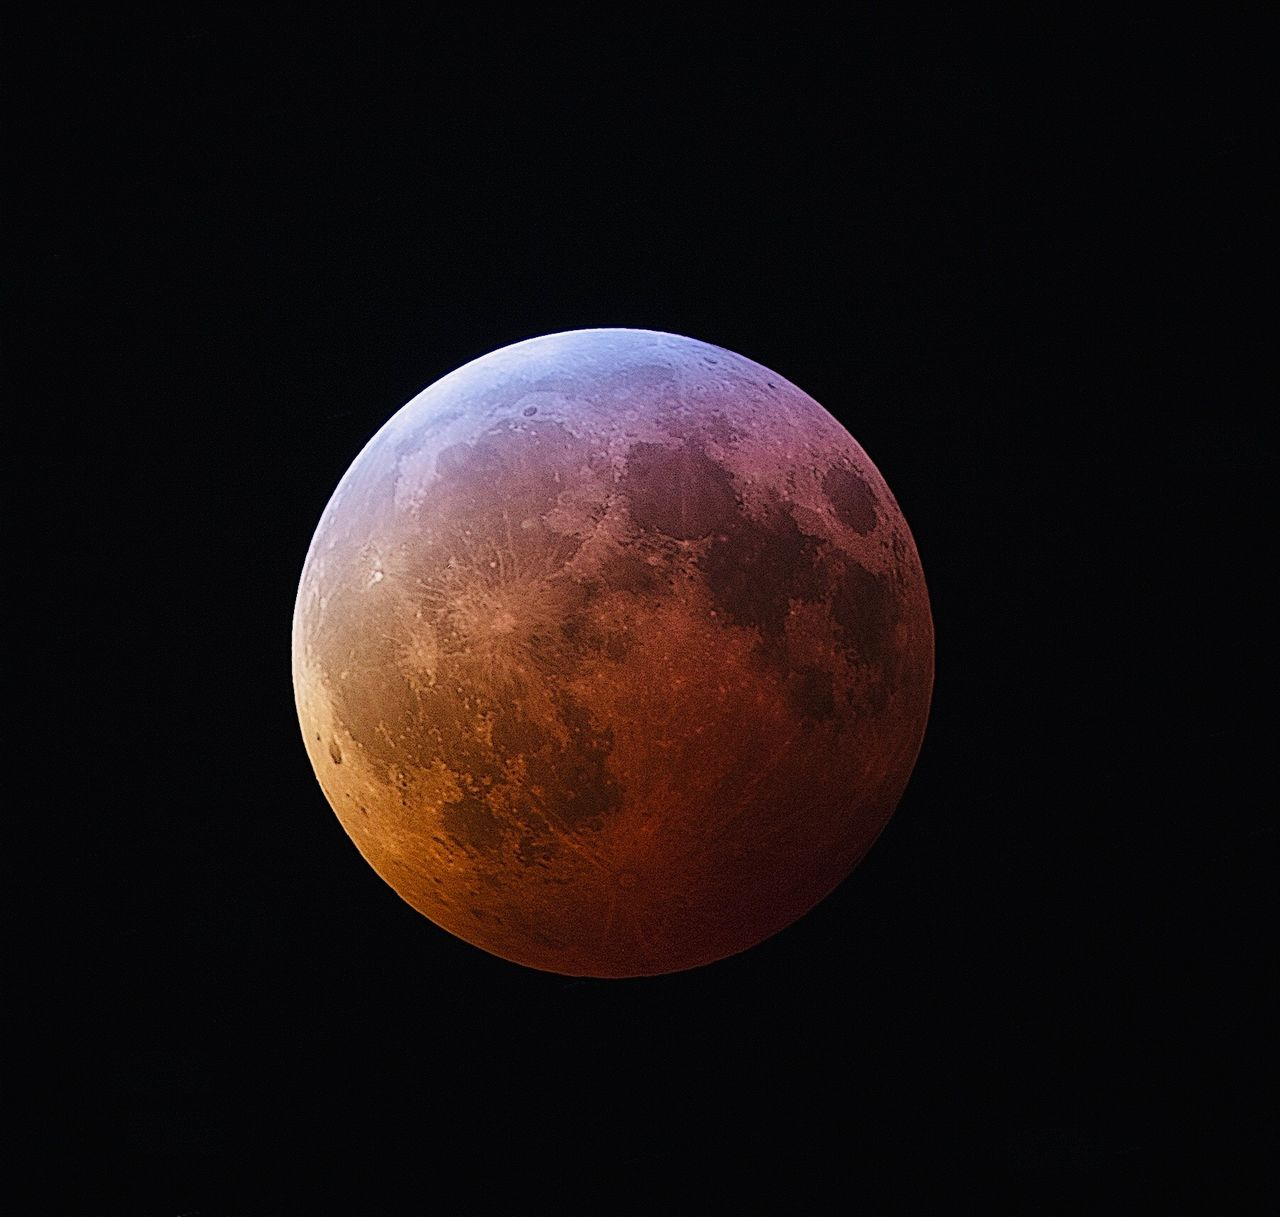 space, astronomy, sky, no people, copy space, night, moon, beauty in nature, black background, nature, cut out, moon surface, single object, shape, circle, sphere, geometric shape, full moon, close-up, clear sky, eclipse, planetary moon, space and astronomy